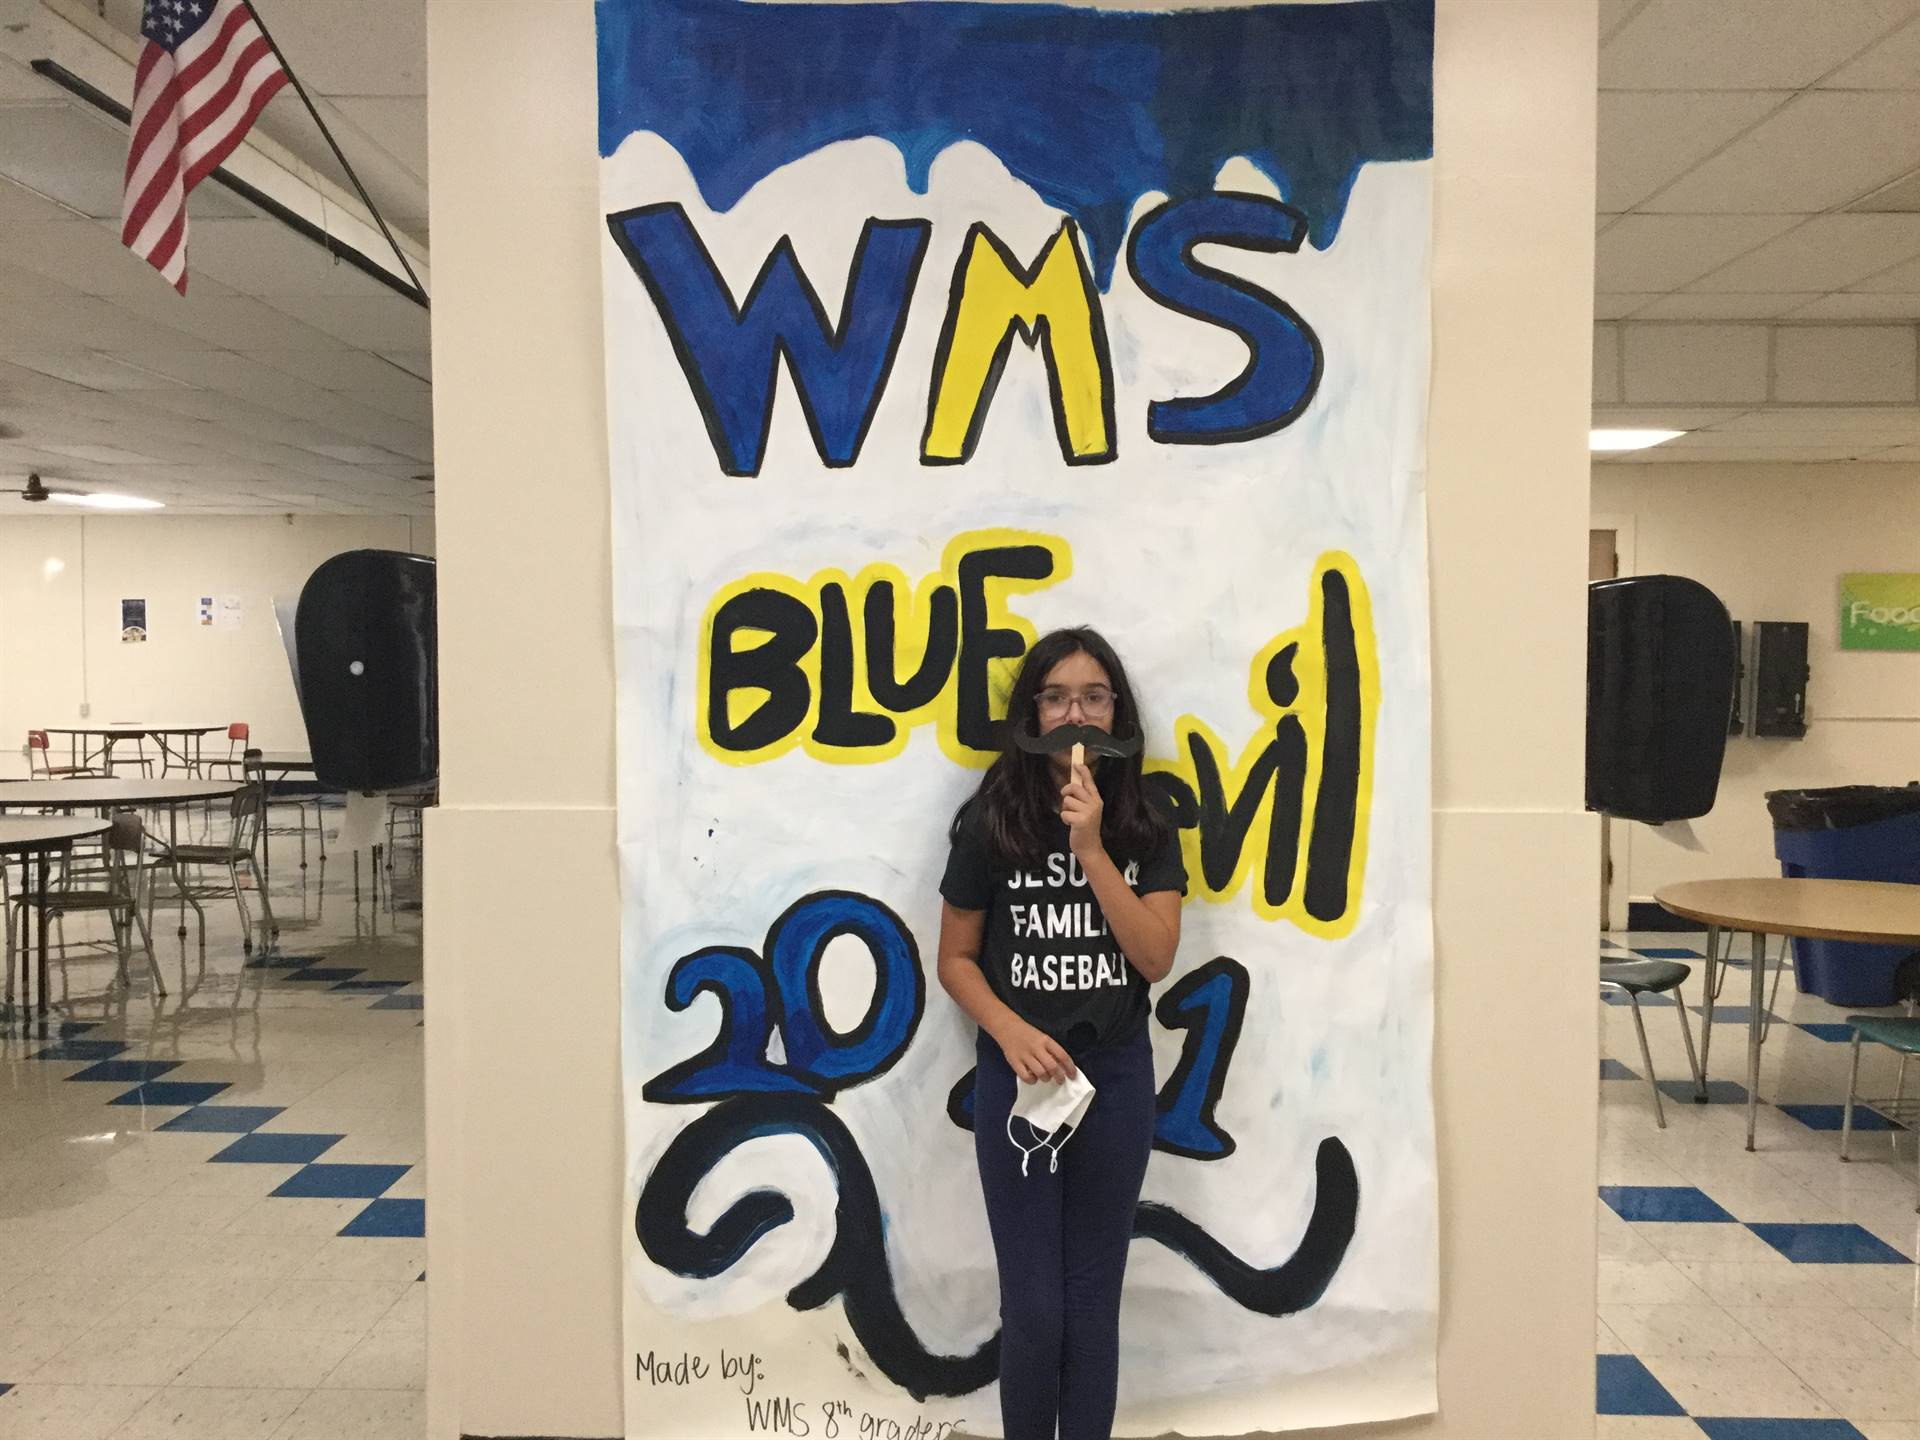 One child in front of WMS Blue Devils 2021 sign